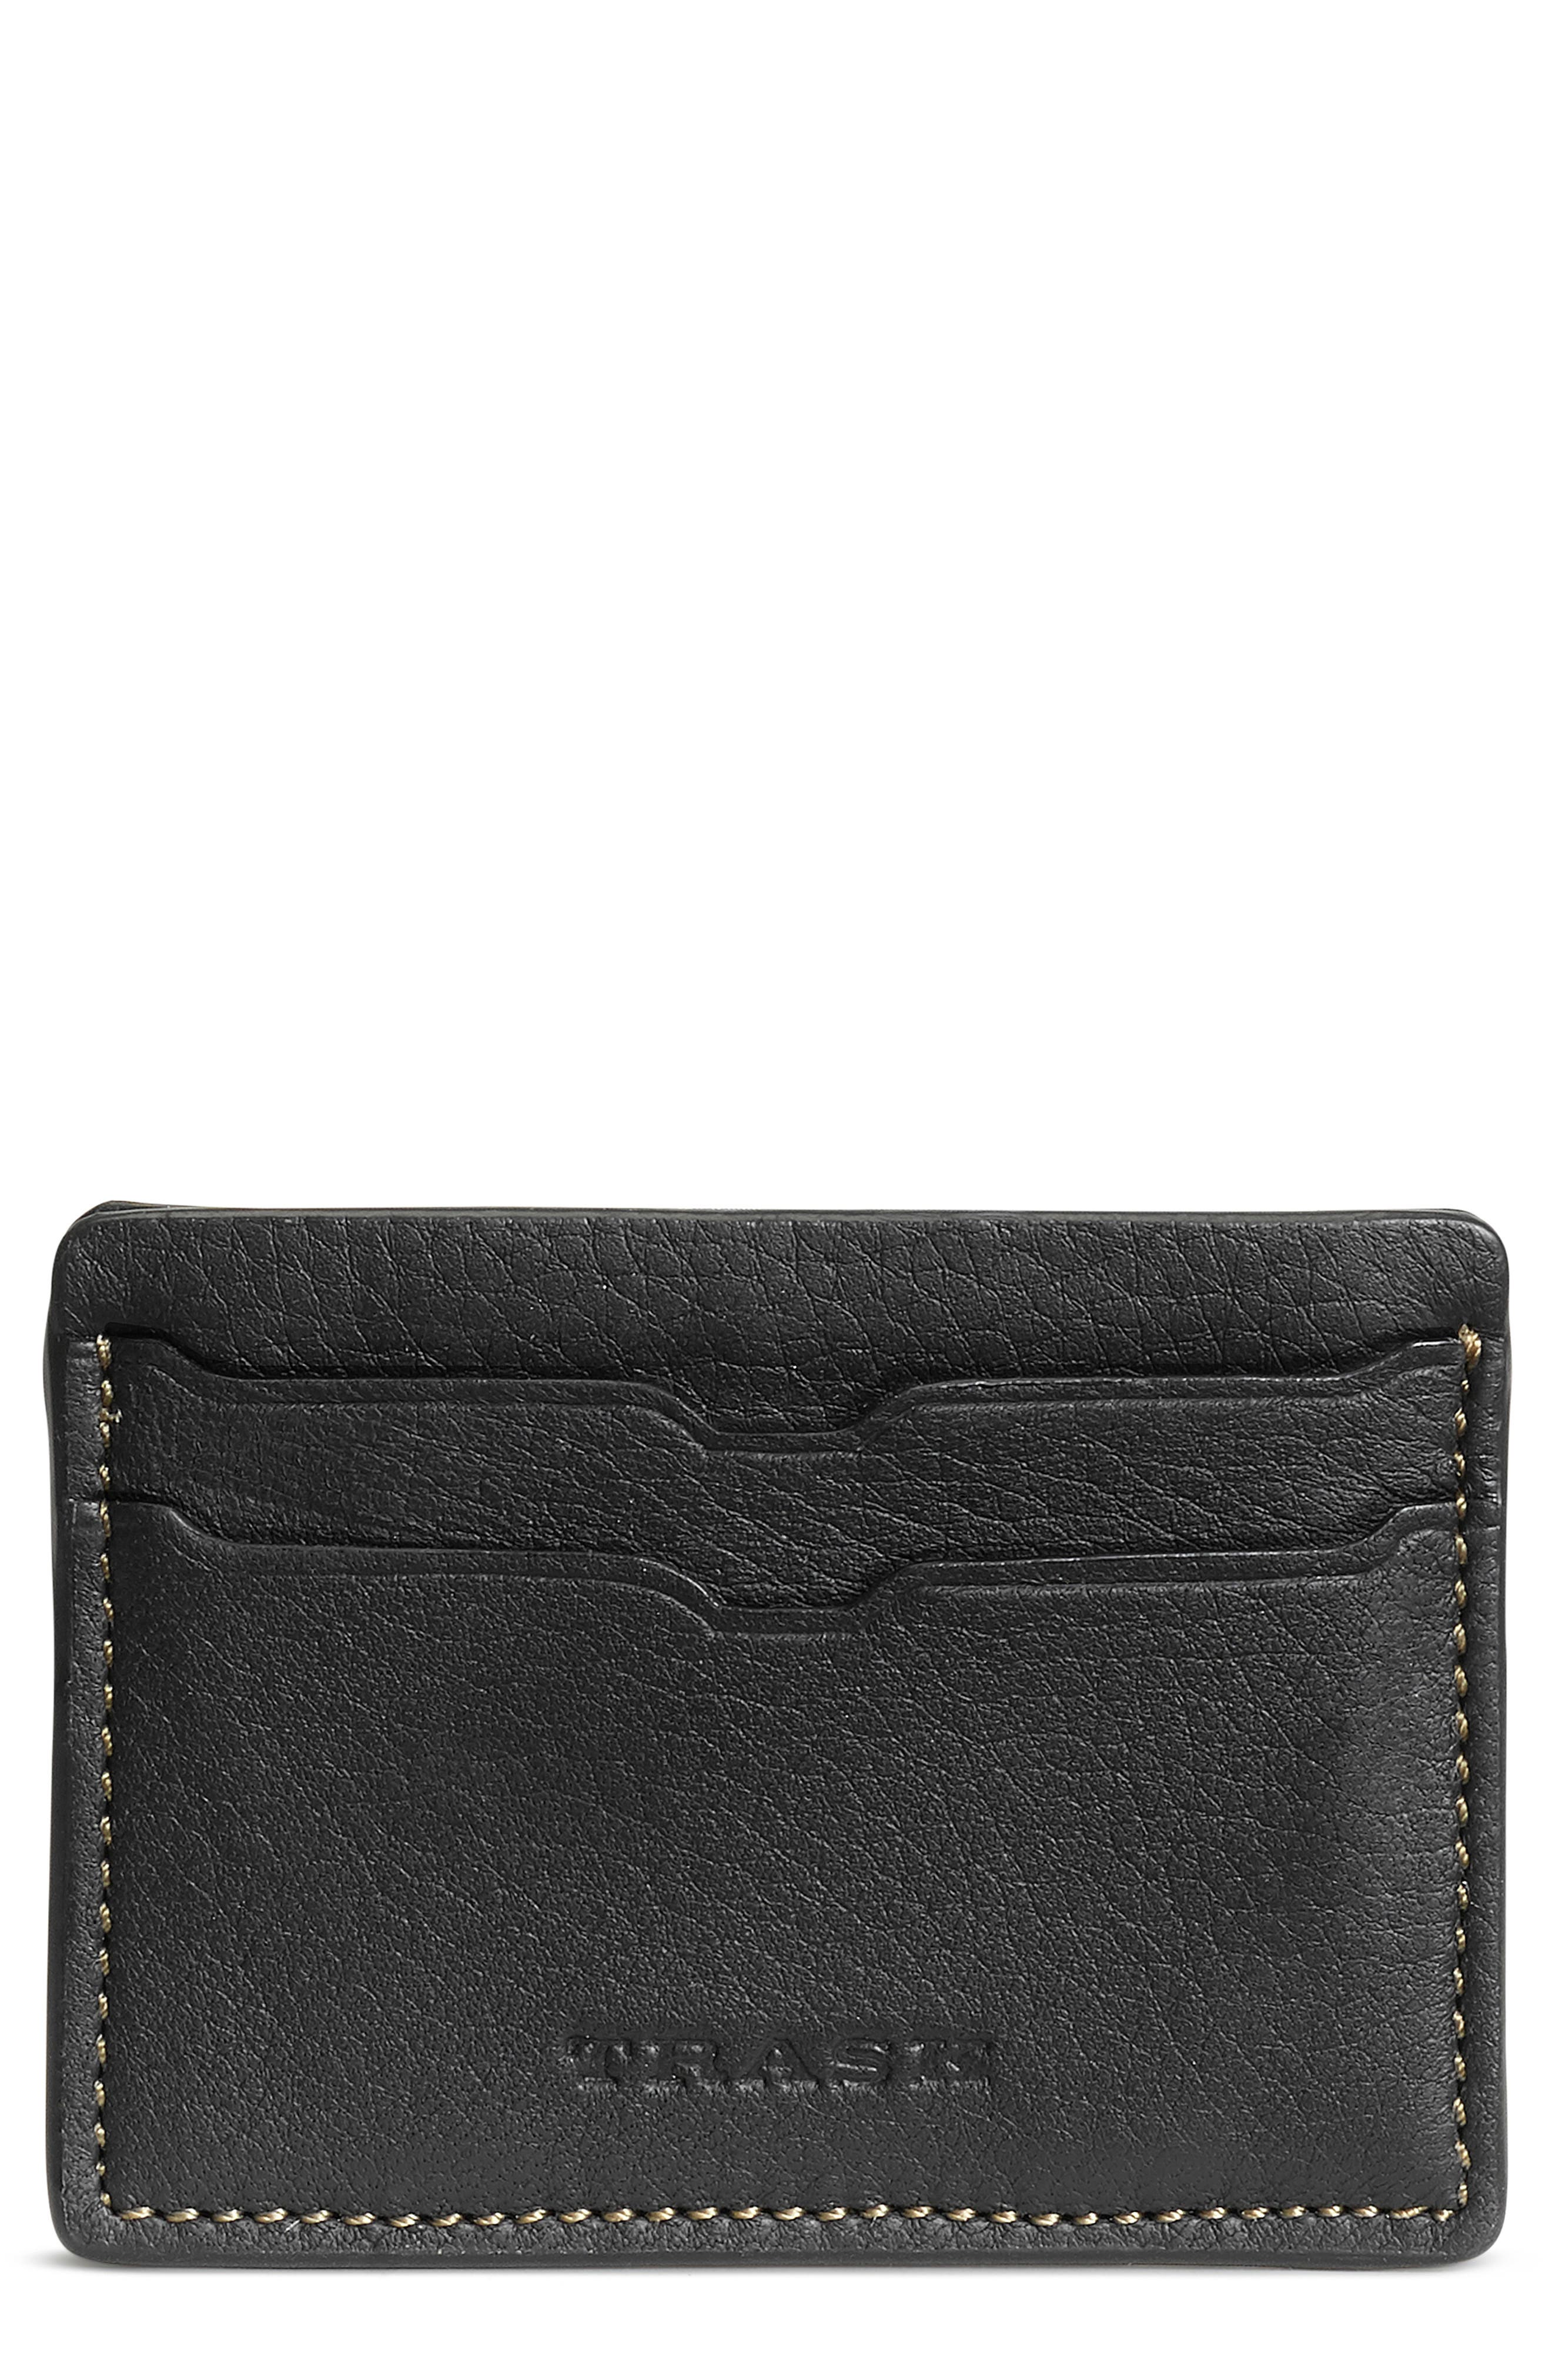 Built from Norwegian elk or American bison leather, this handsome card case offers a fusion of form and function with easy appeal. RFID shielding helps protect your personal information. Style Name: Trask Jackson Leather Card Case. Style Number: 5995817. Available in stores.